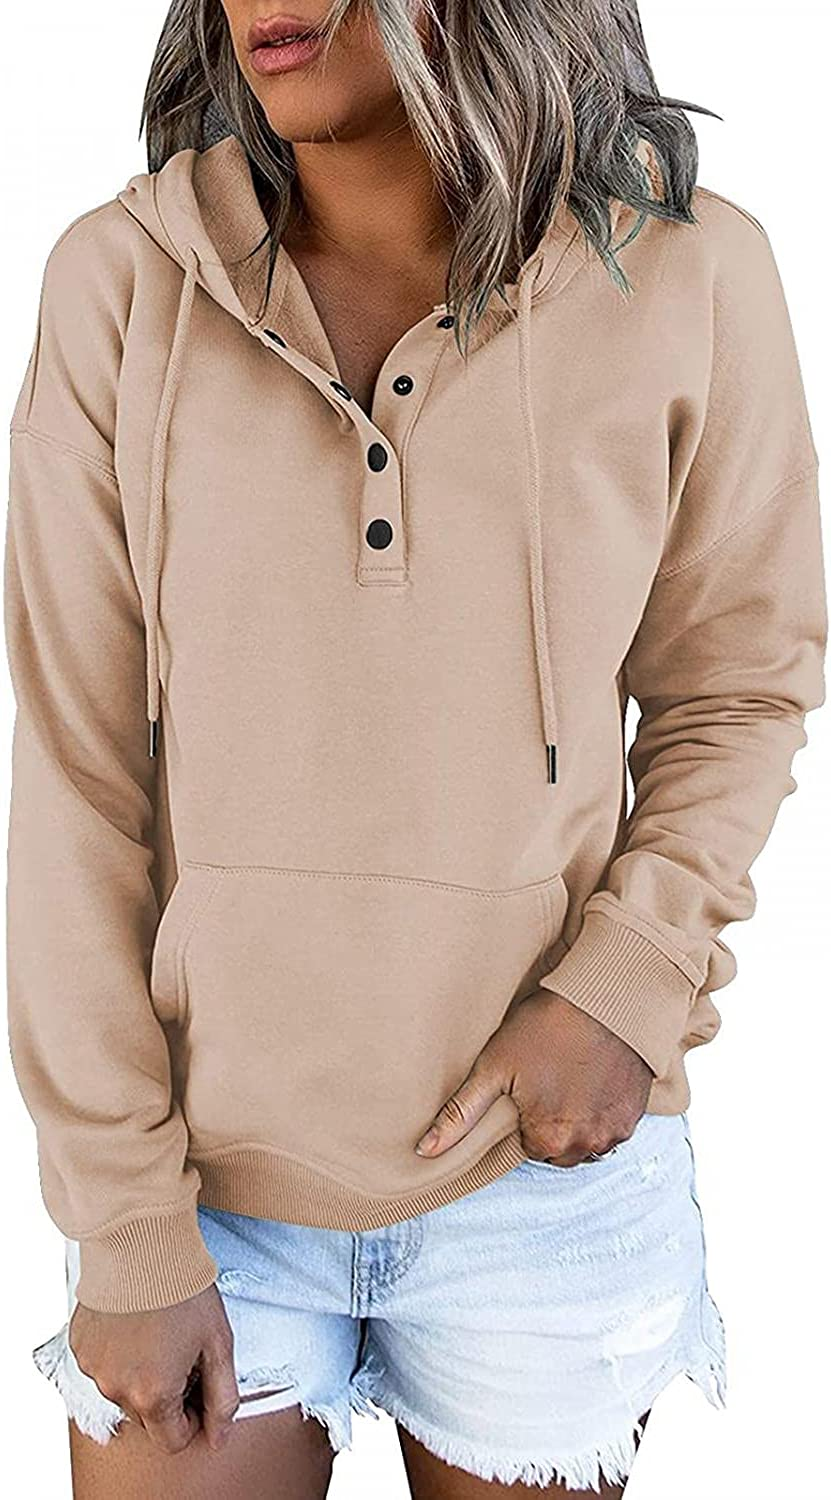 felwors Hoodies for Women, Womens Loose Pullover Hoodies Button Down Long Sleeve Casual Sweatshirt Basic Plus Size Coat